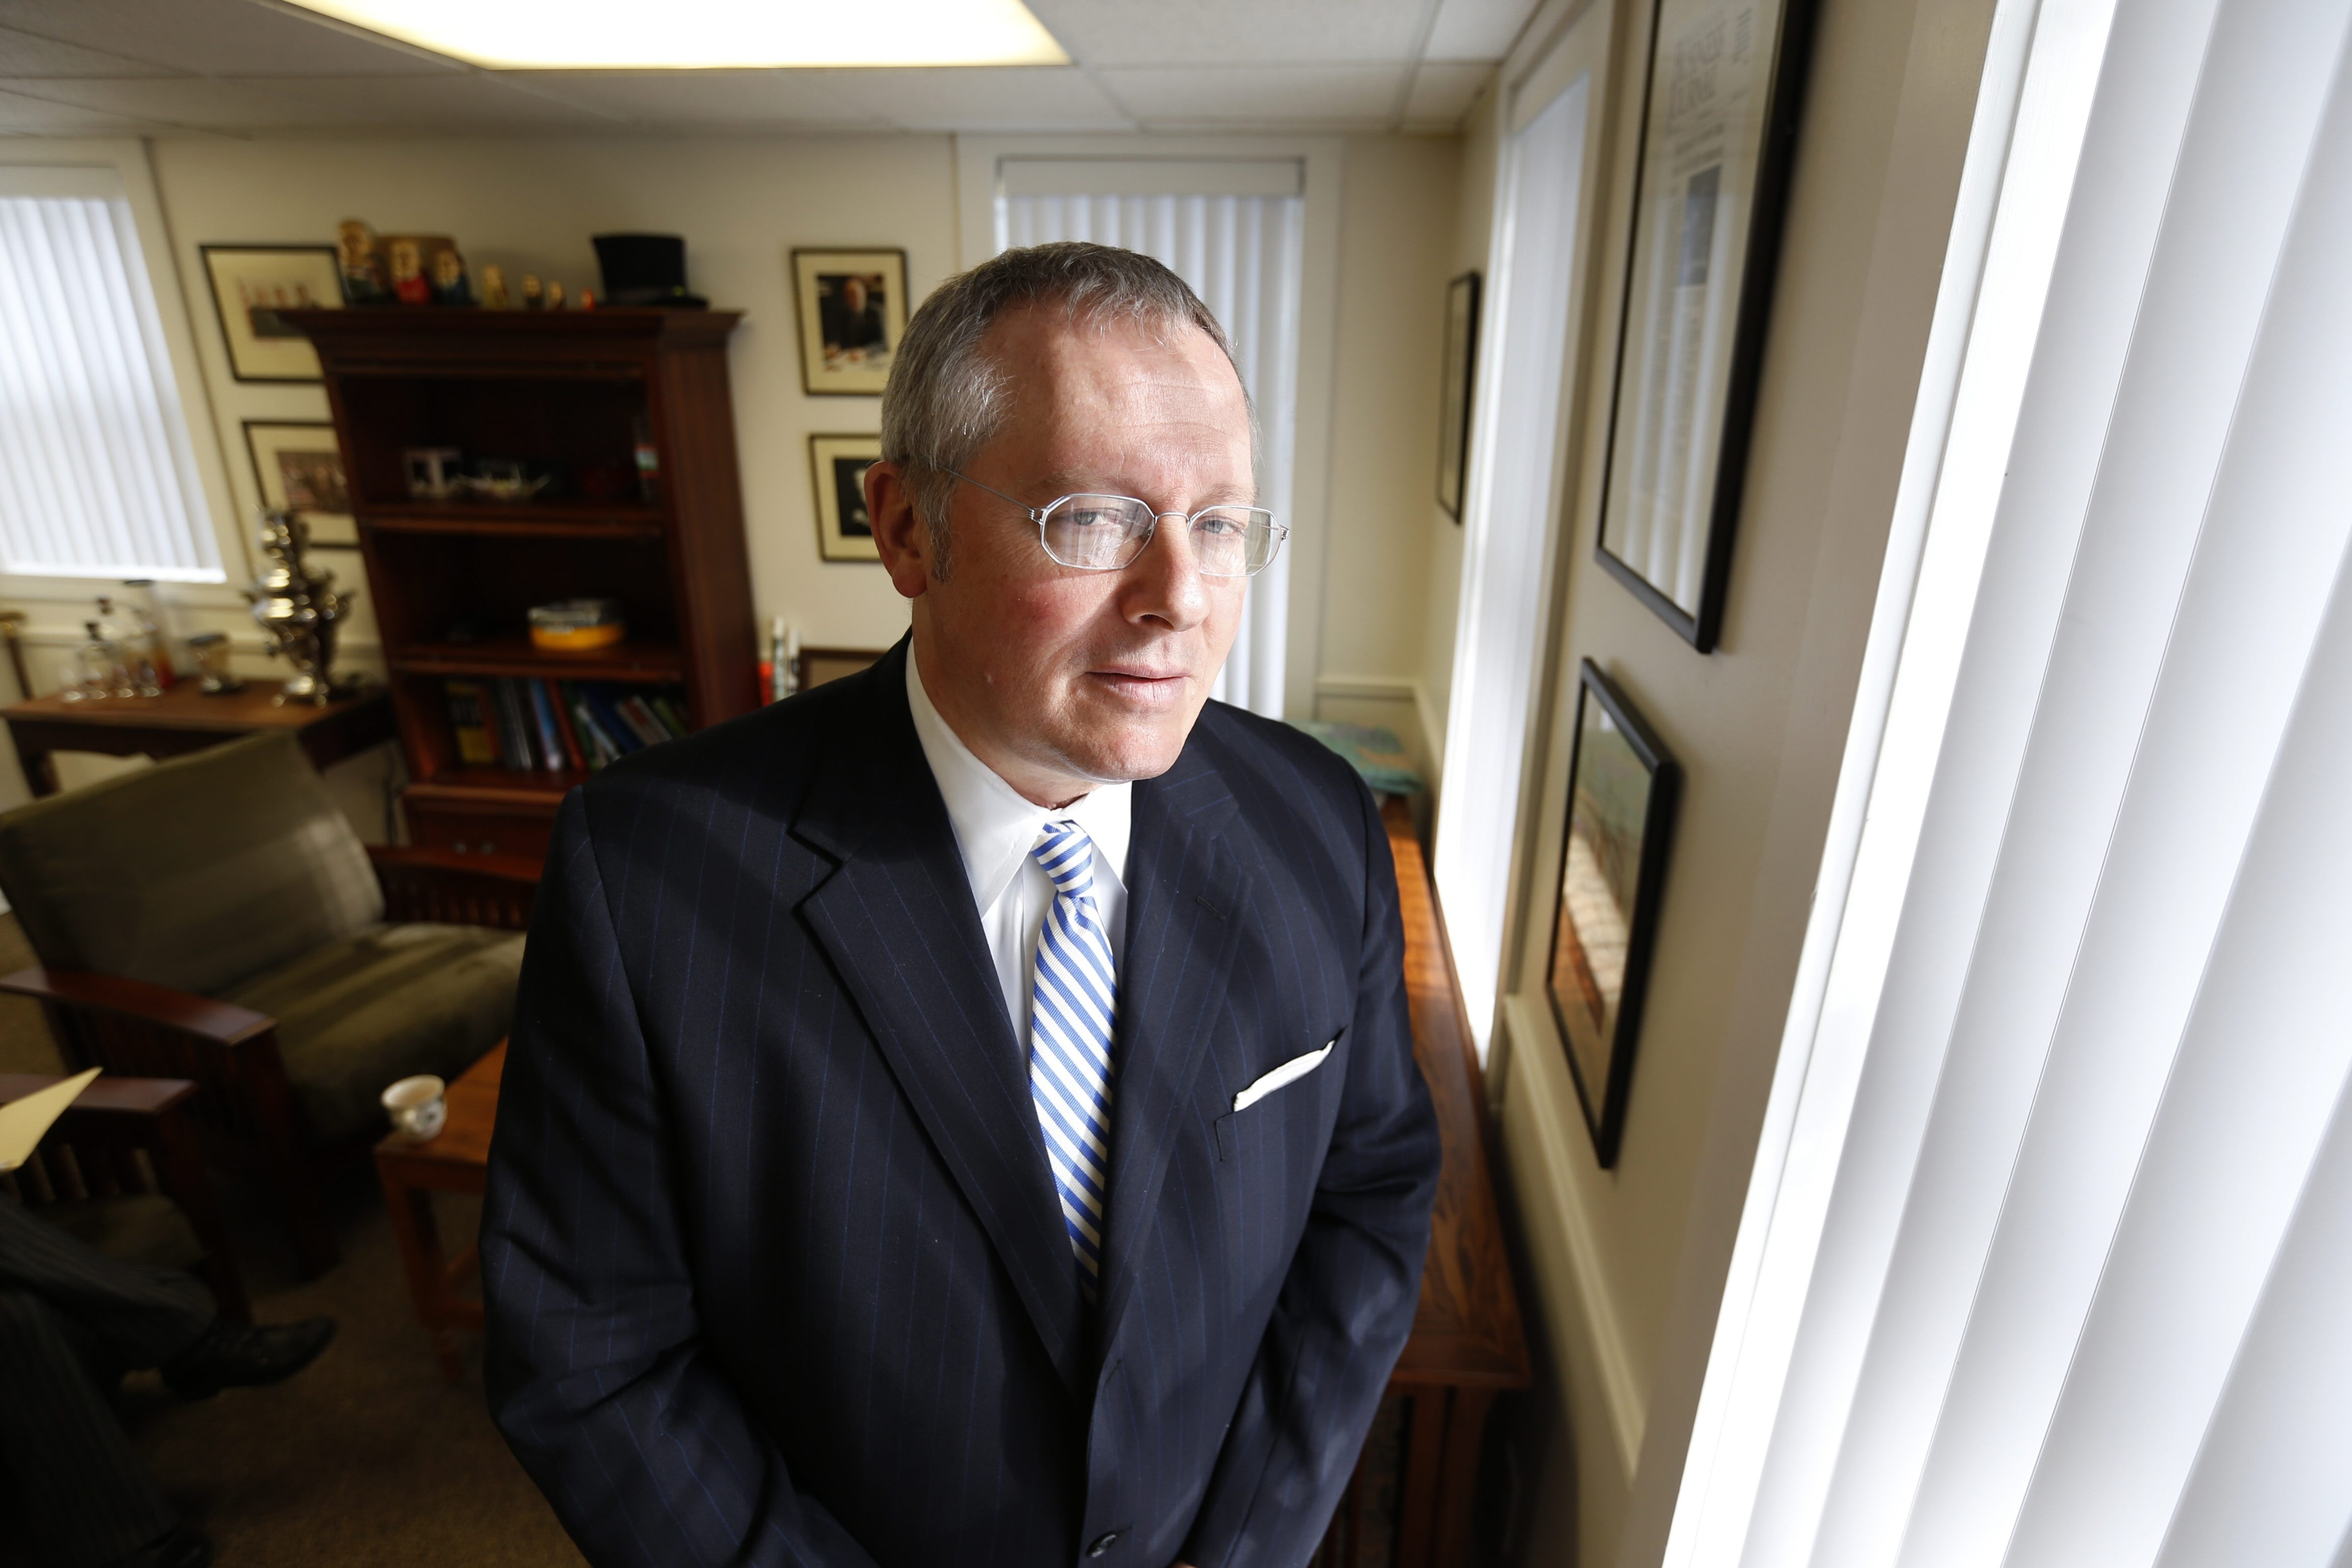 Michael Caputo, enigmatic Republican political consultant and international PR man who served as campaign manager for Carl Paladino and fills in as radio talk show host on WBEN.  This was in his East Aurora office on Tuesday, Jan. 19, 2016.  (Robert Kirkham/Buffalo News)